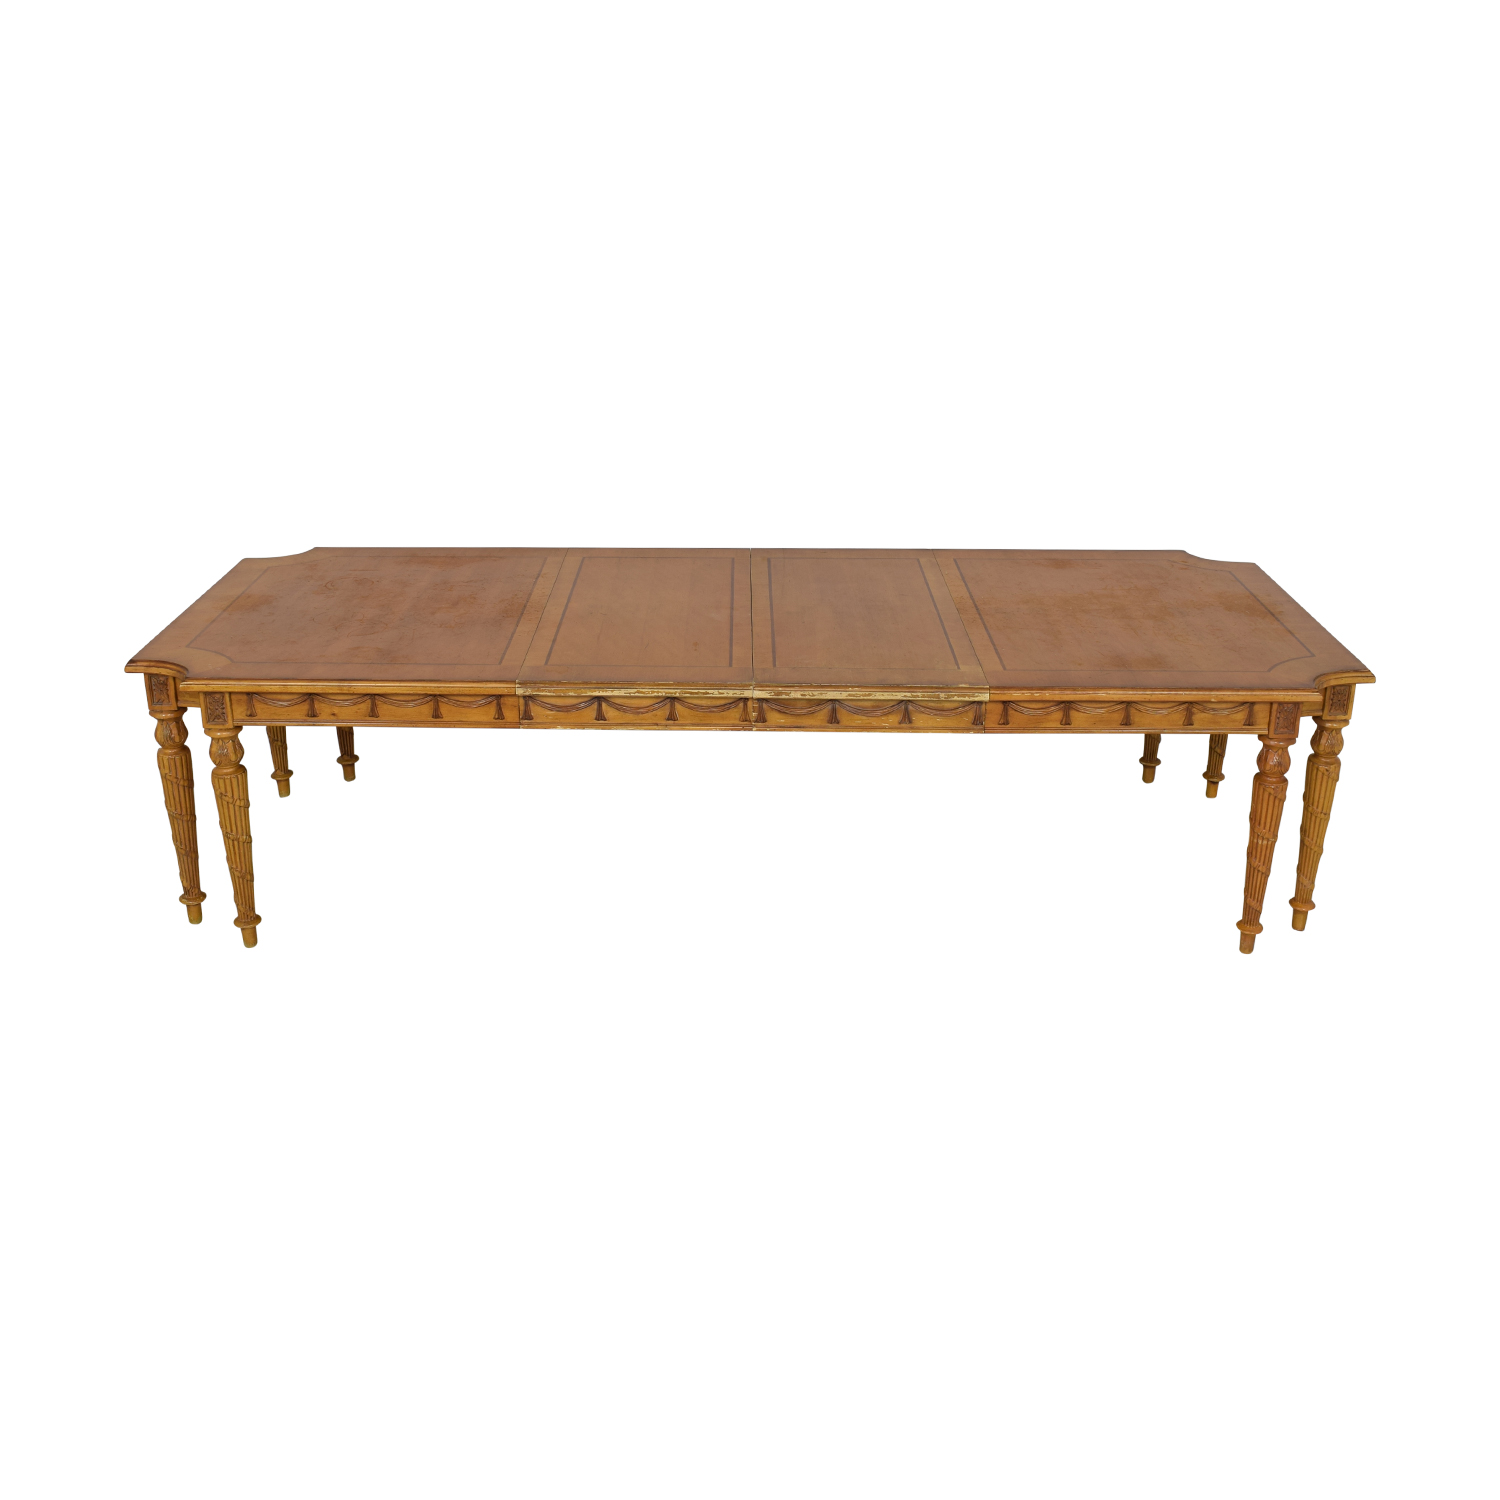 Century Furniture Century Furniture Dining Table ma